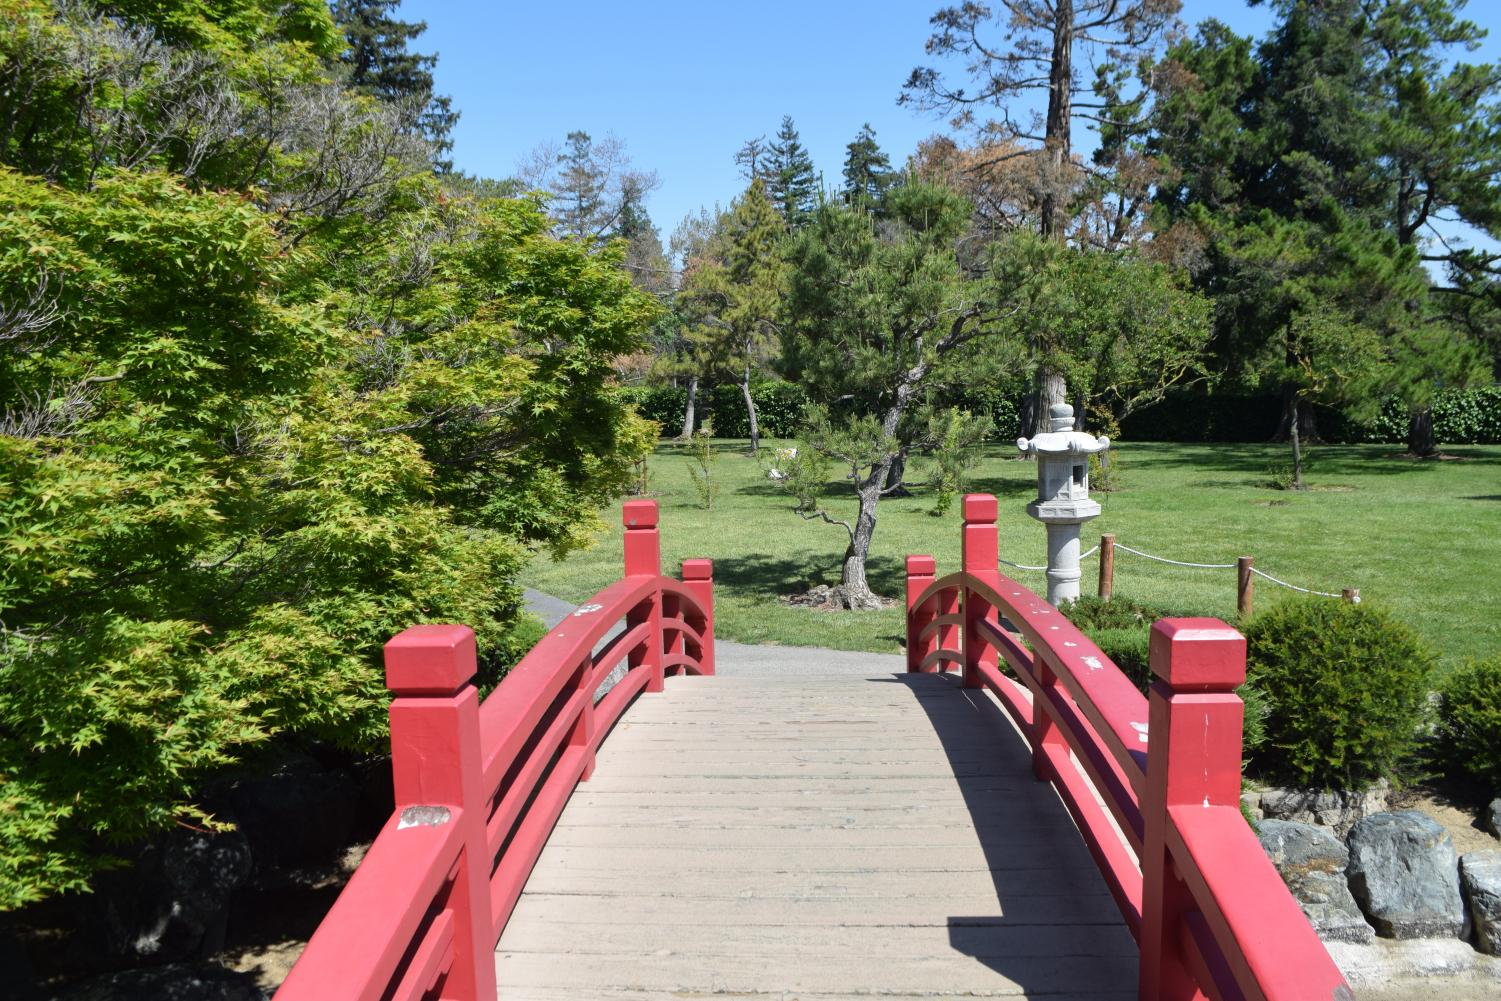 Small+bridge+overlooking+a+part+of+the+Japanese+Friendship+Garden.